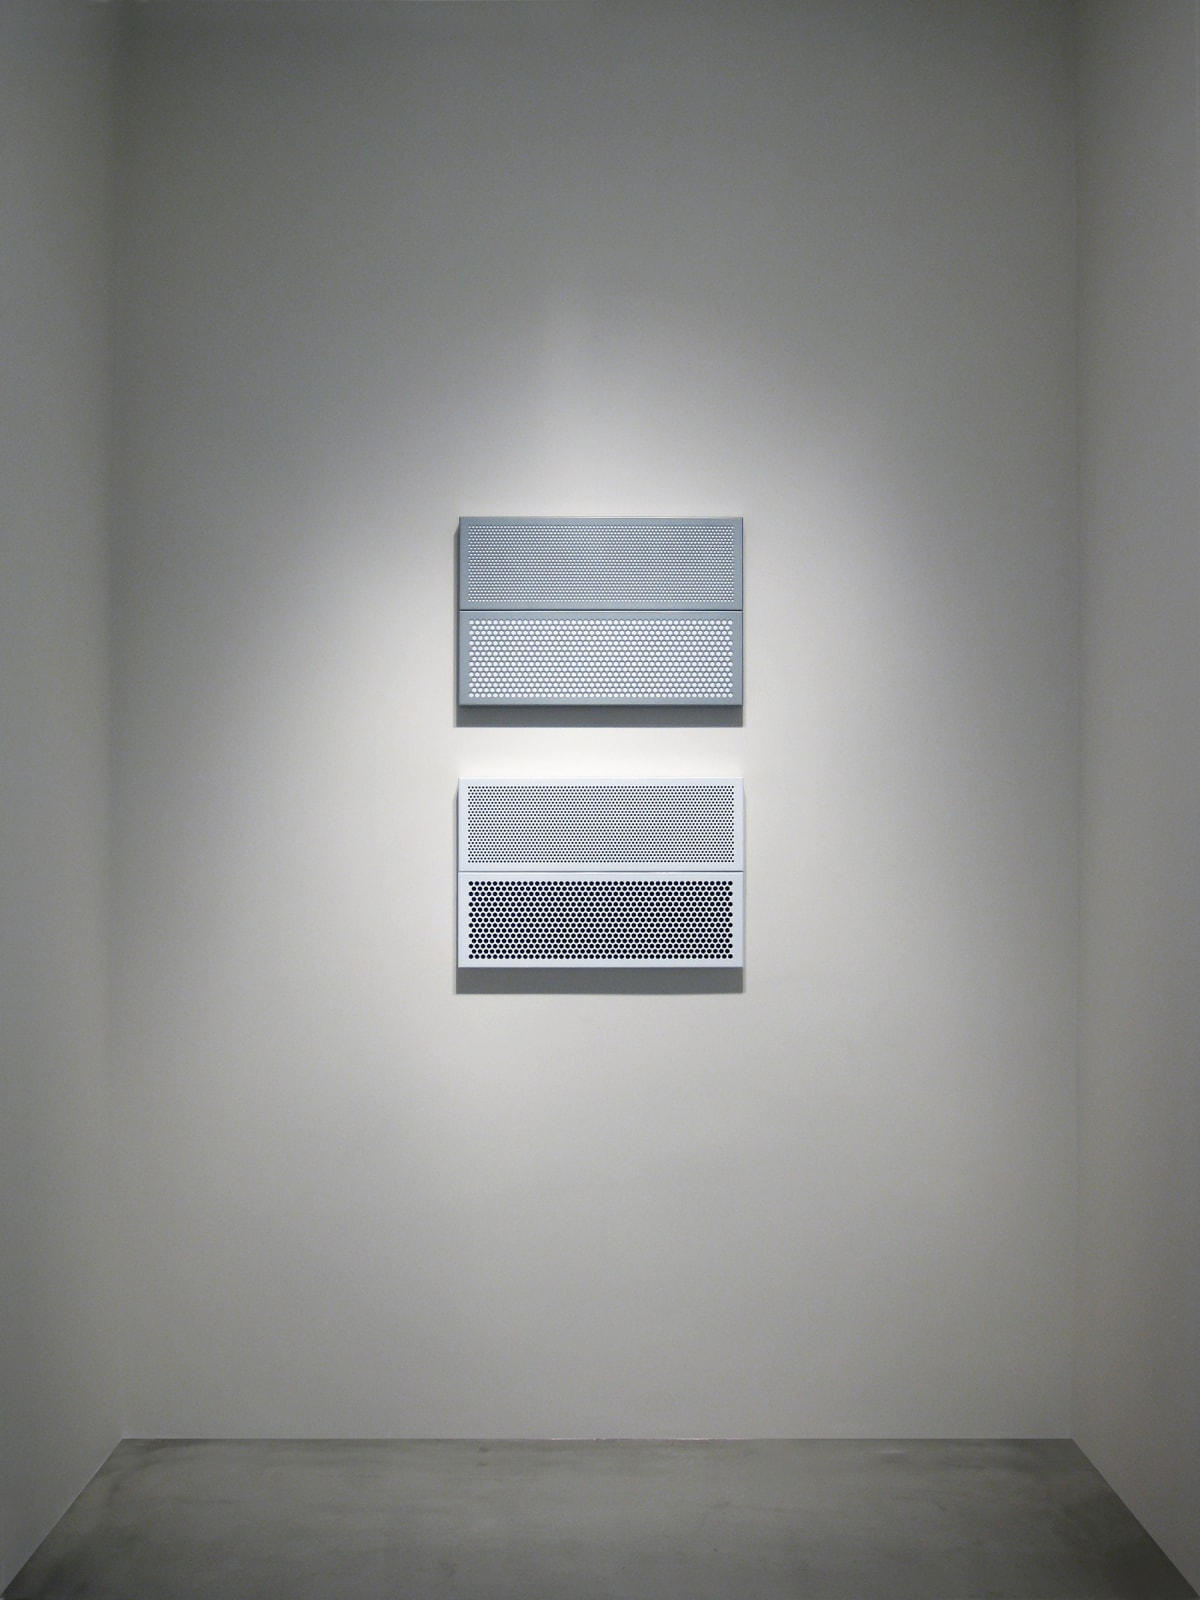 KRISTJÁN GUDMUNDSSON | Paintings in Gray and White Frames